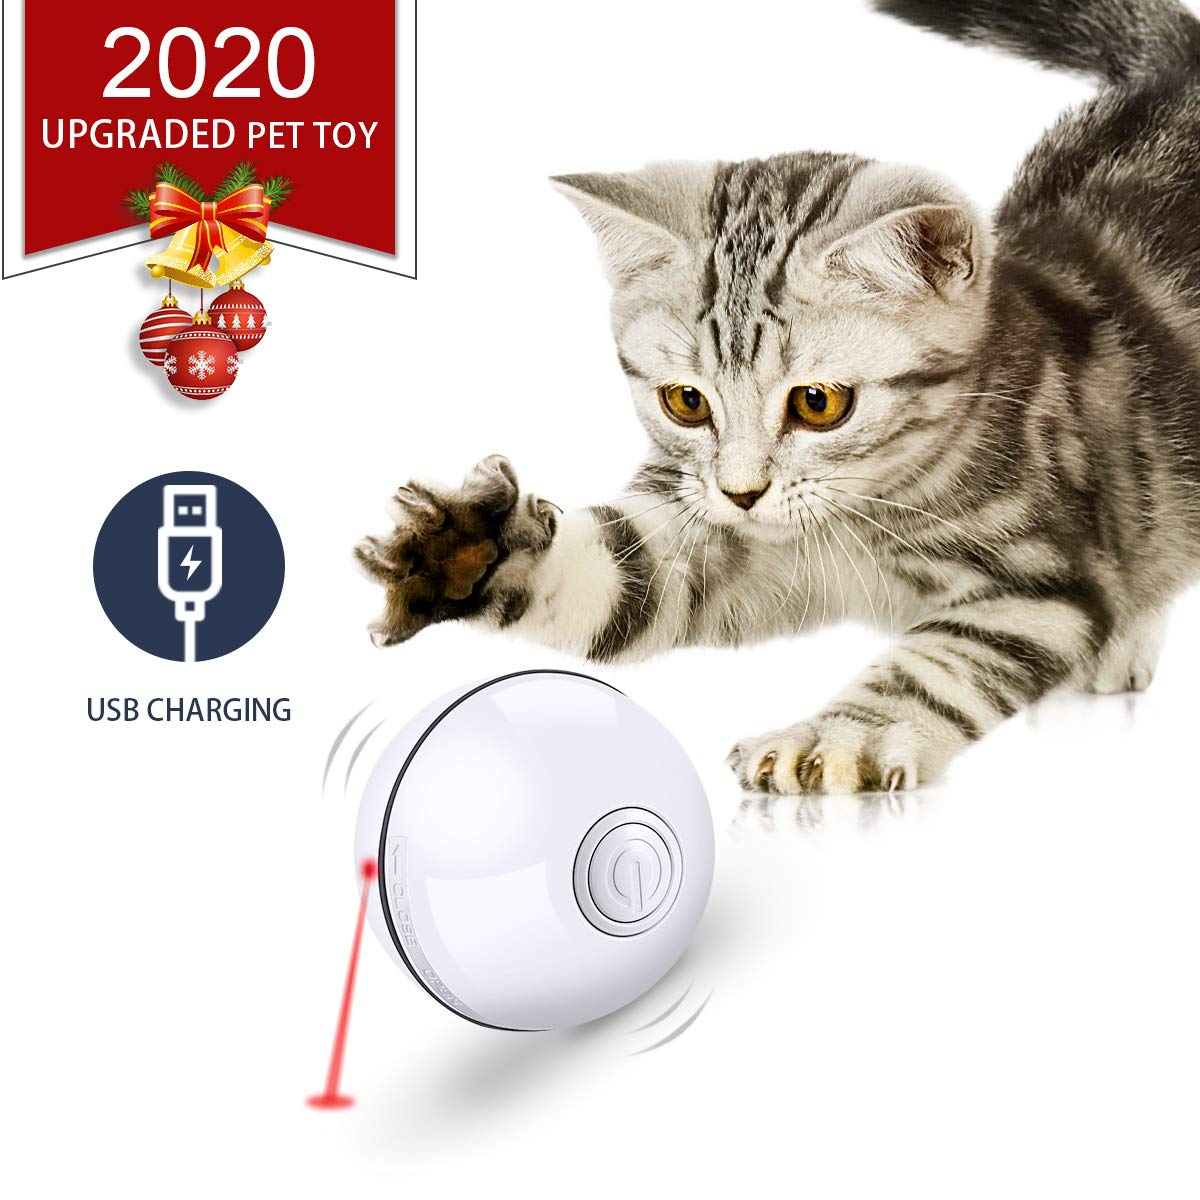 Feeko Cat Toys Interactive Smart Automatic Rolling Kitten Toys USB Rechargeable LED Light Electronic Cat Toy Ball Cat…